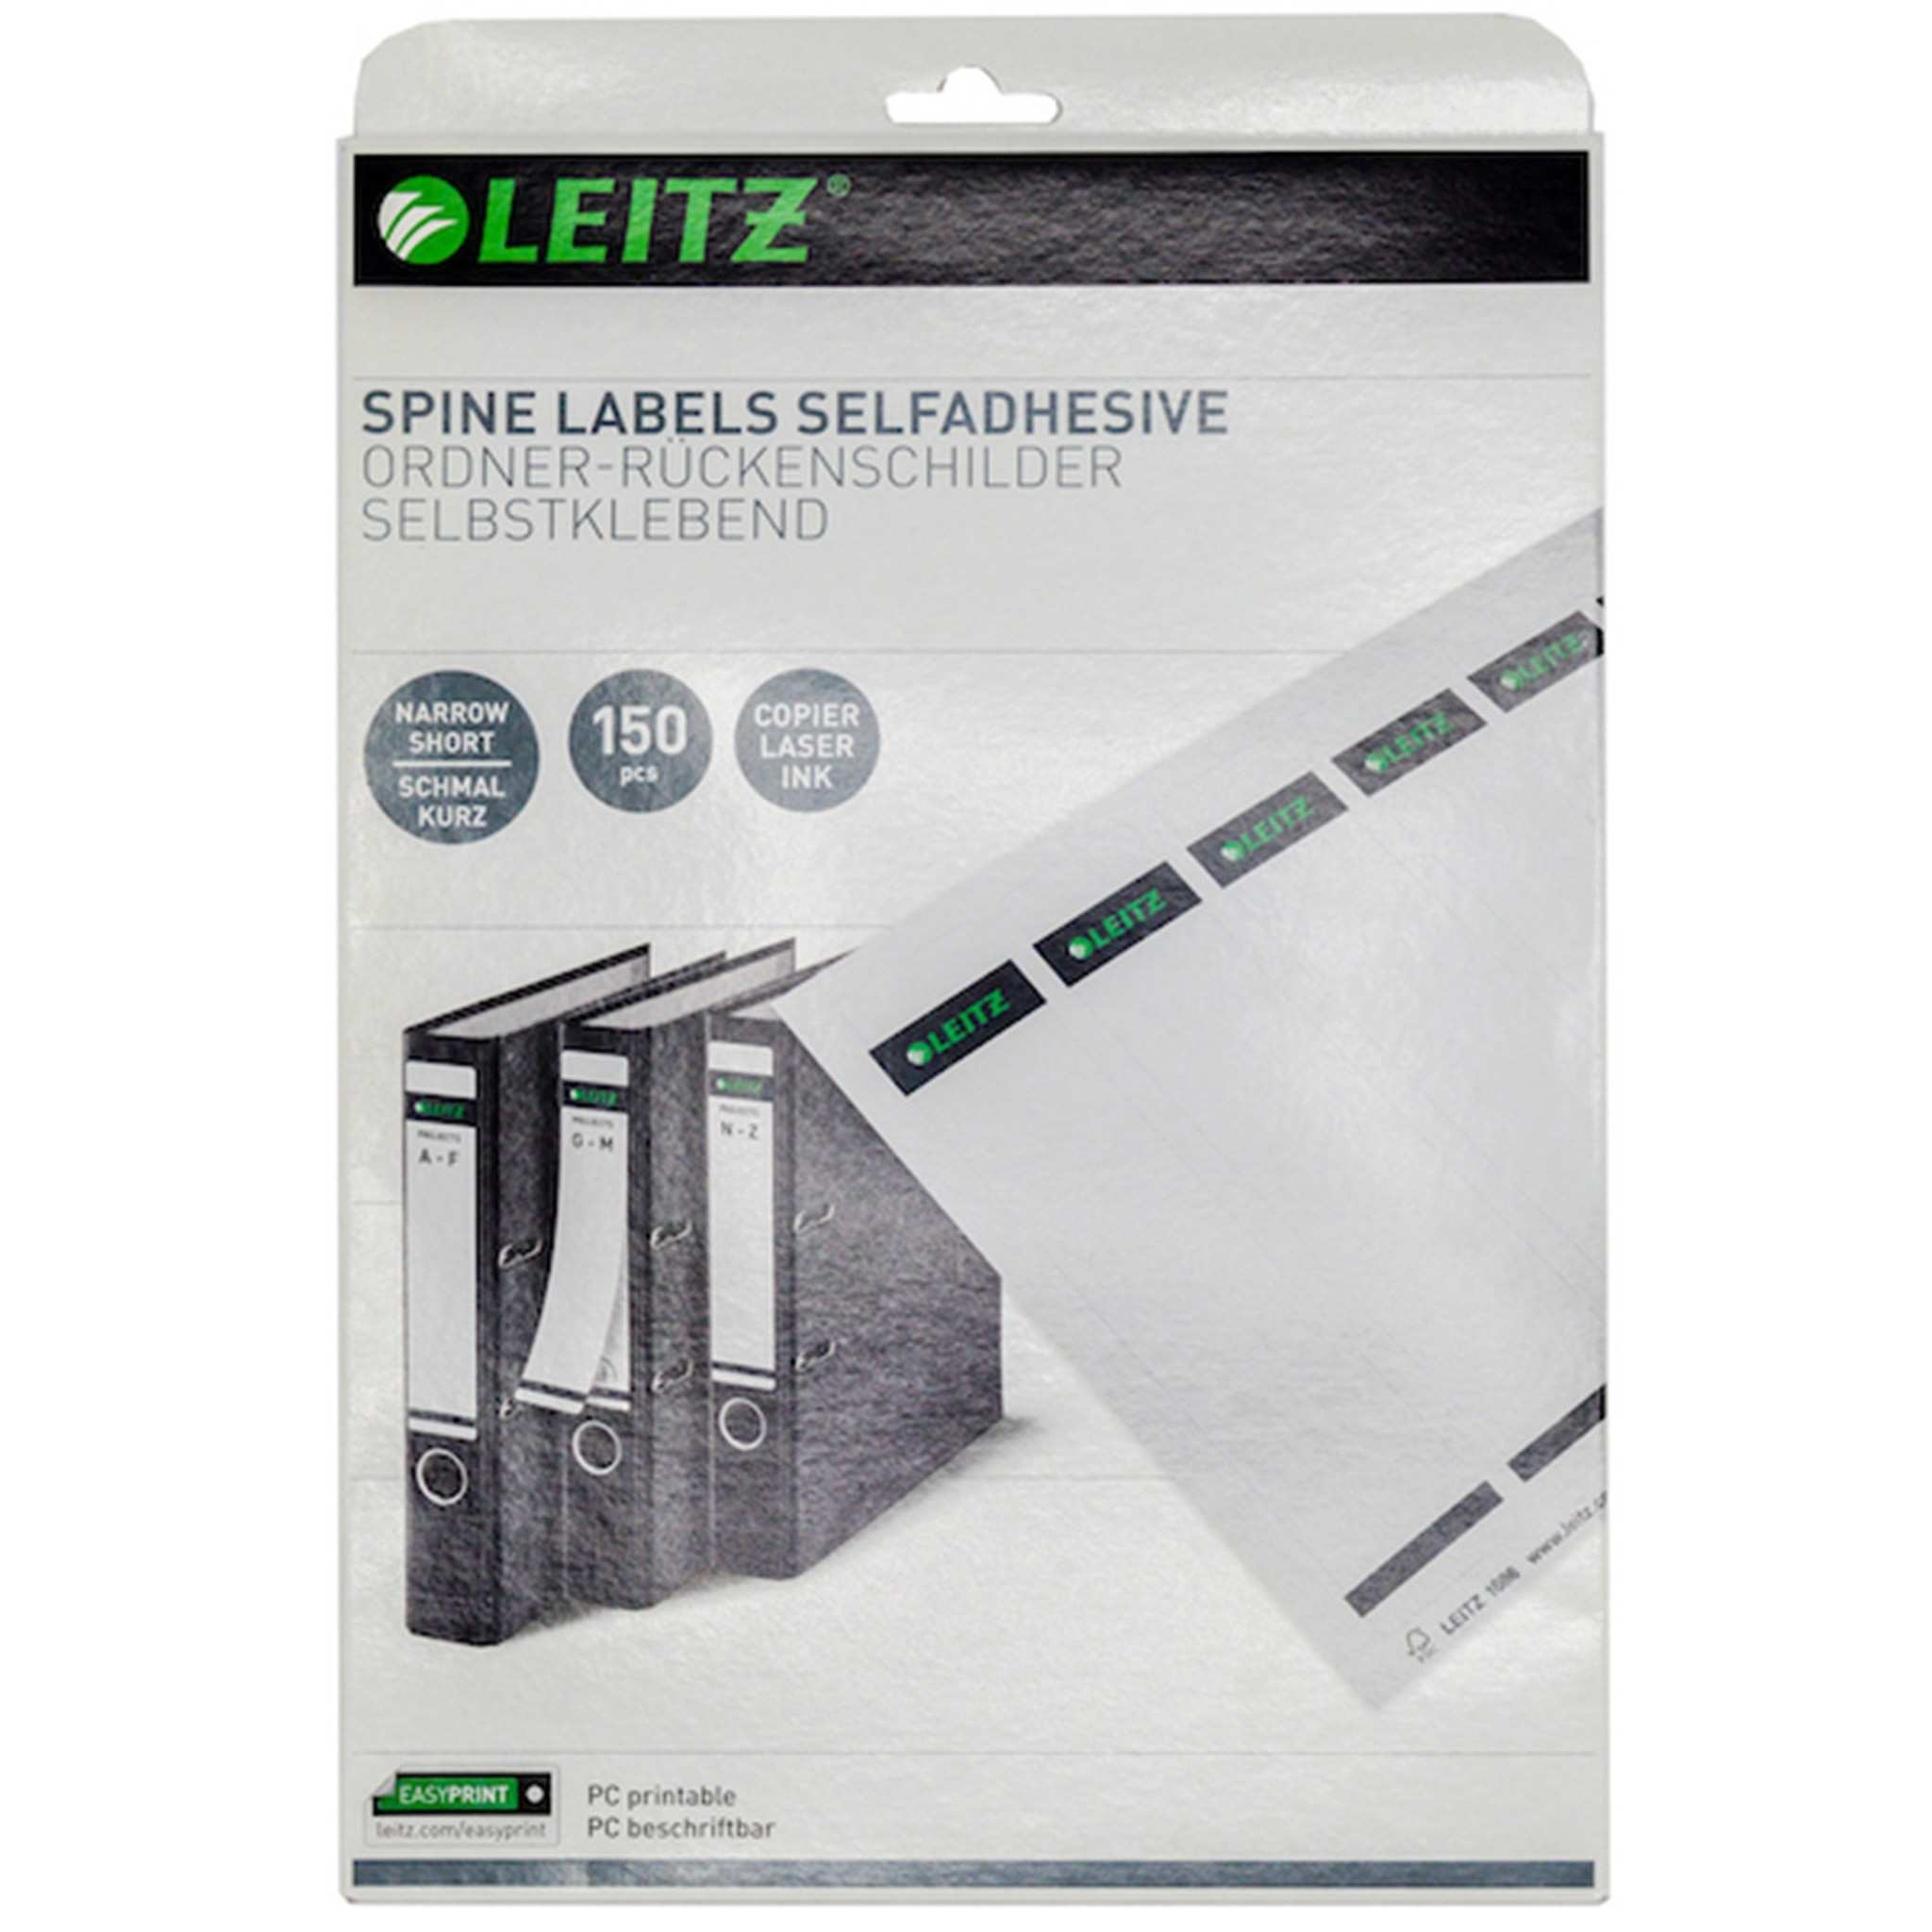 Replacement Spine Labels For Leitz R50 Binder